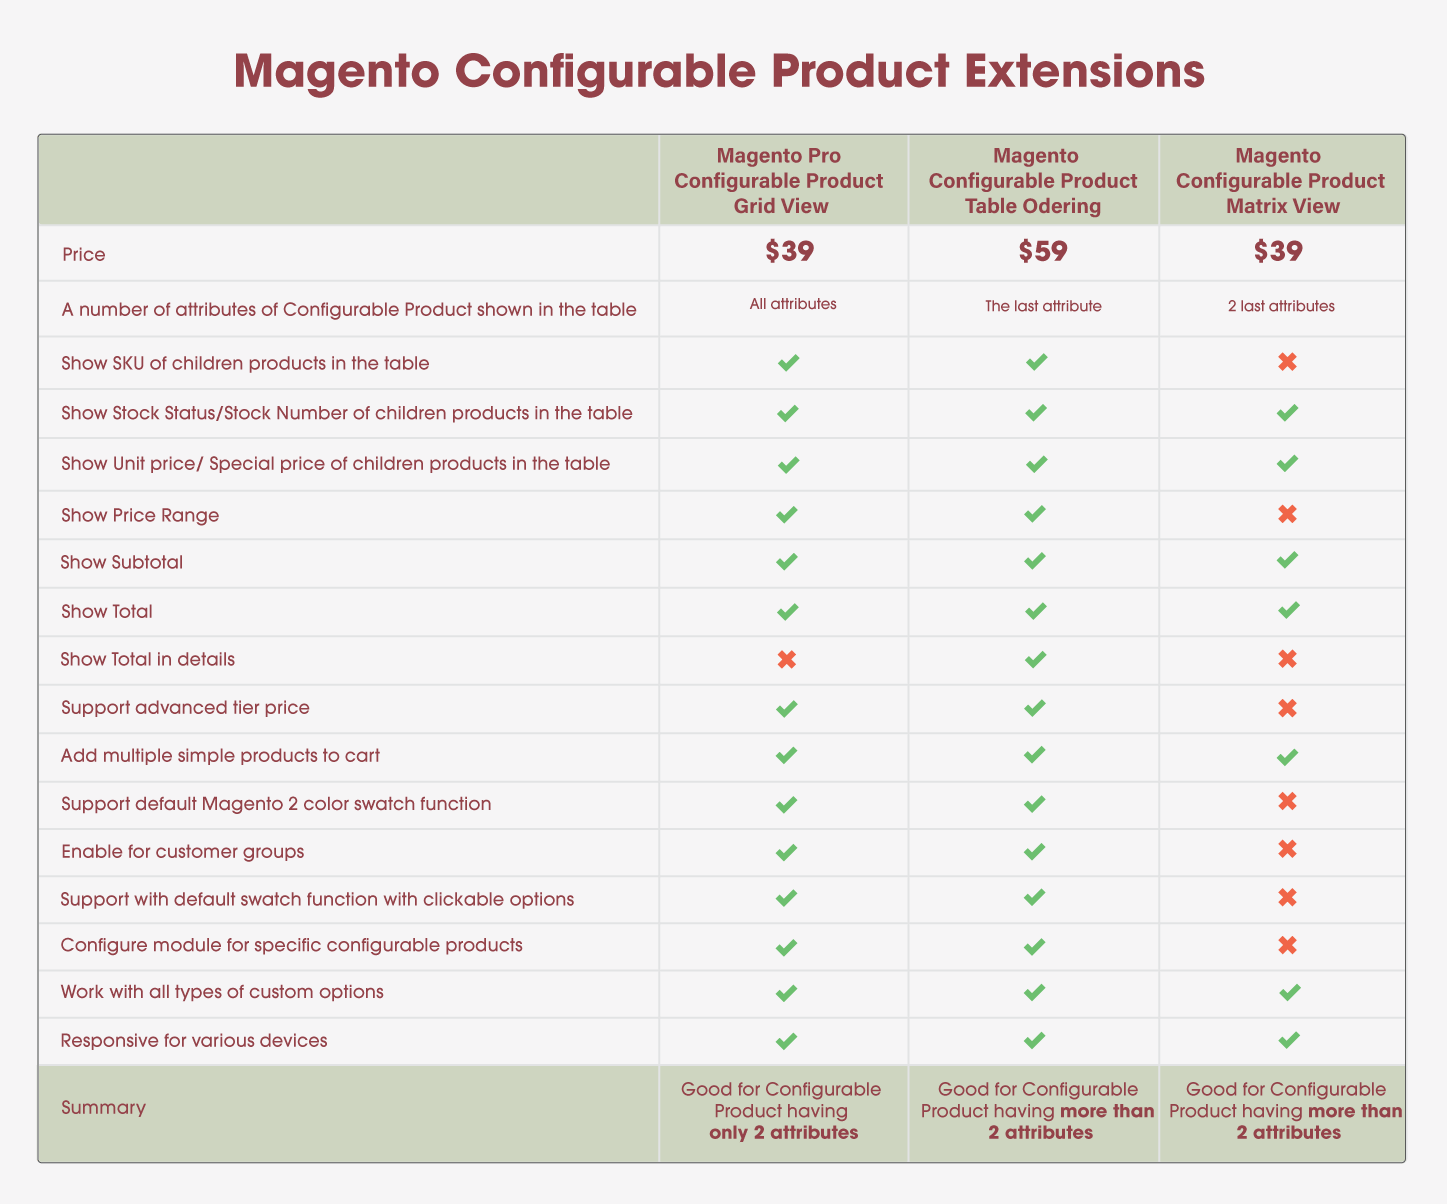 Differences among 3 Magento Configurable Product extensions